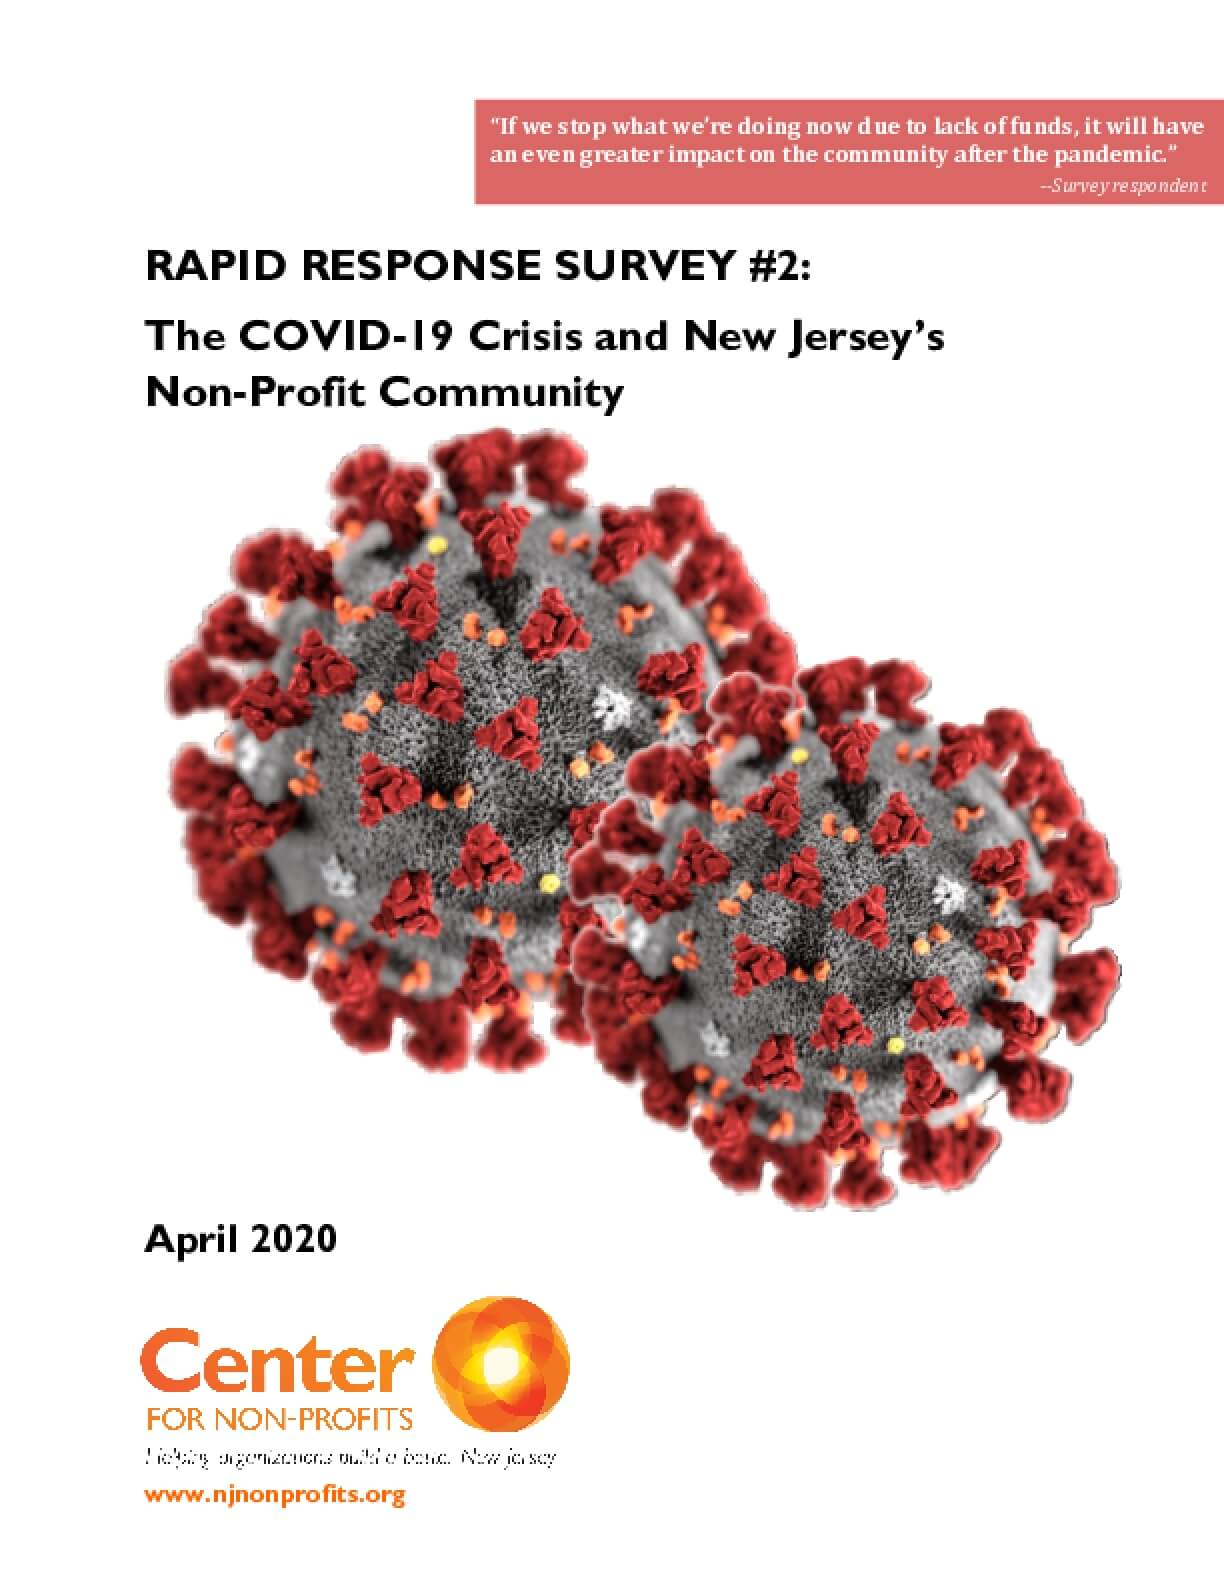 Rapid Response Survey #2: The COVID-19 Crisis and New Jersey's Non-Profit Community